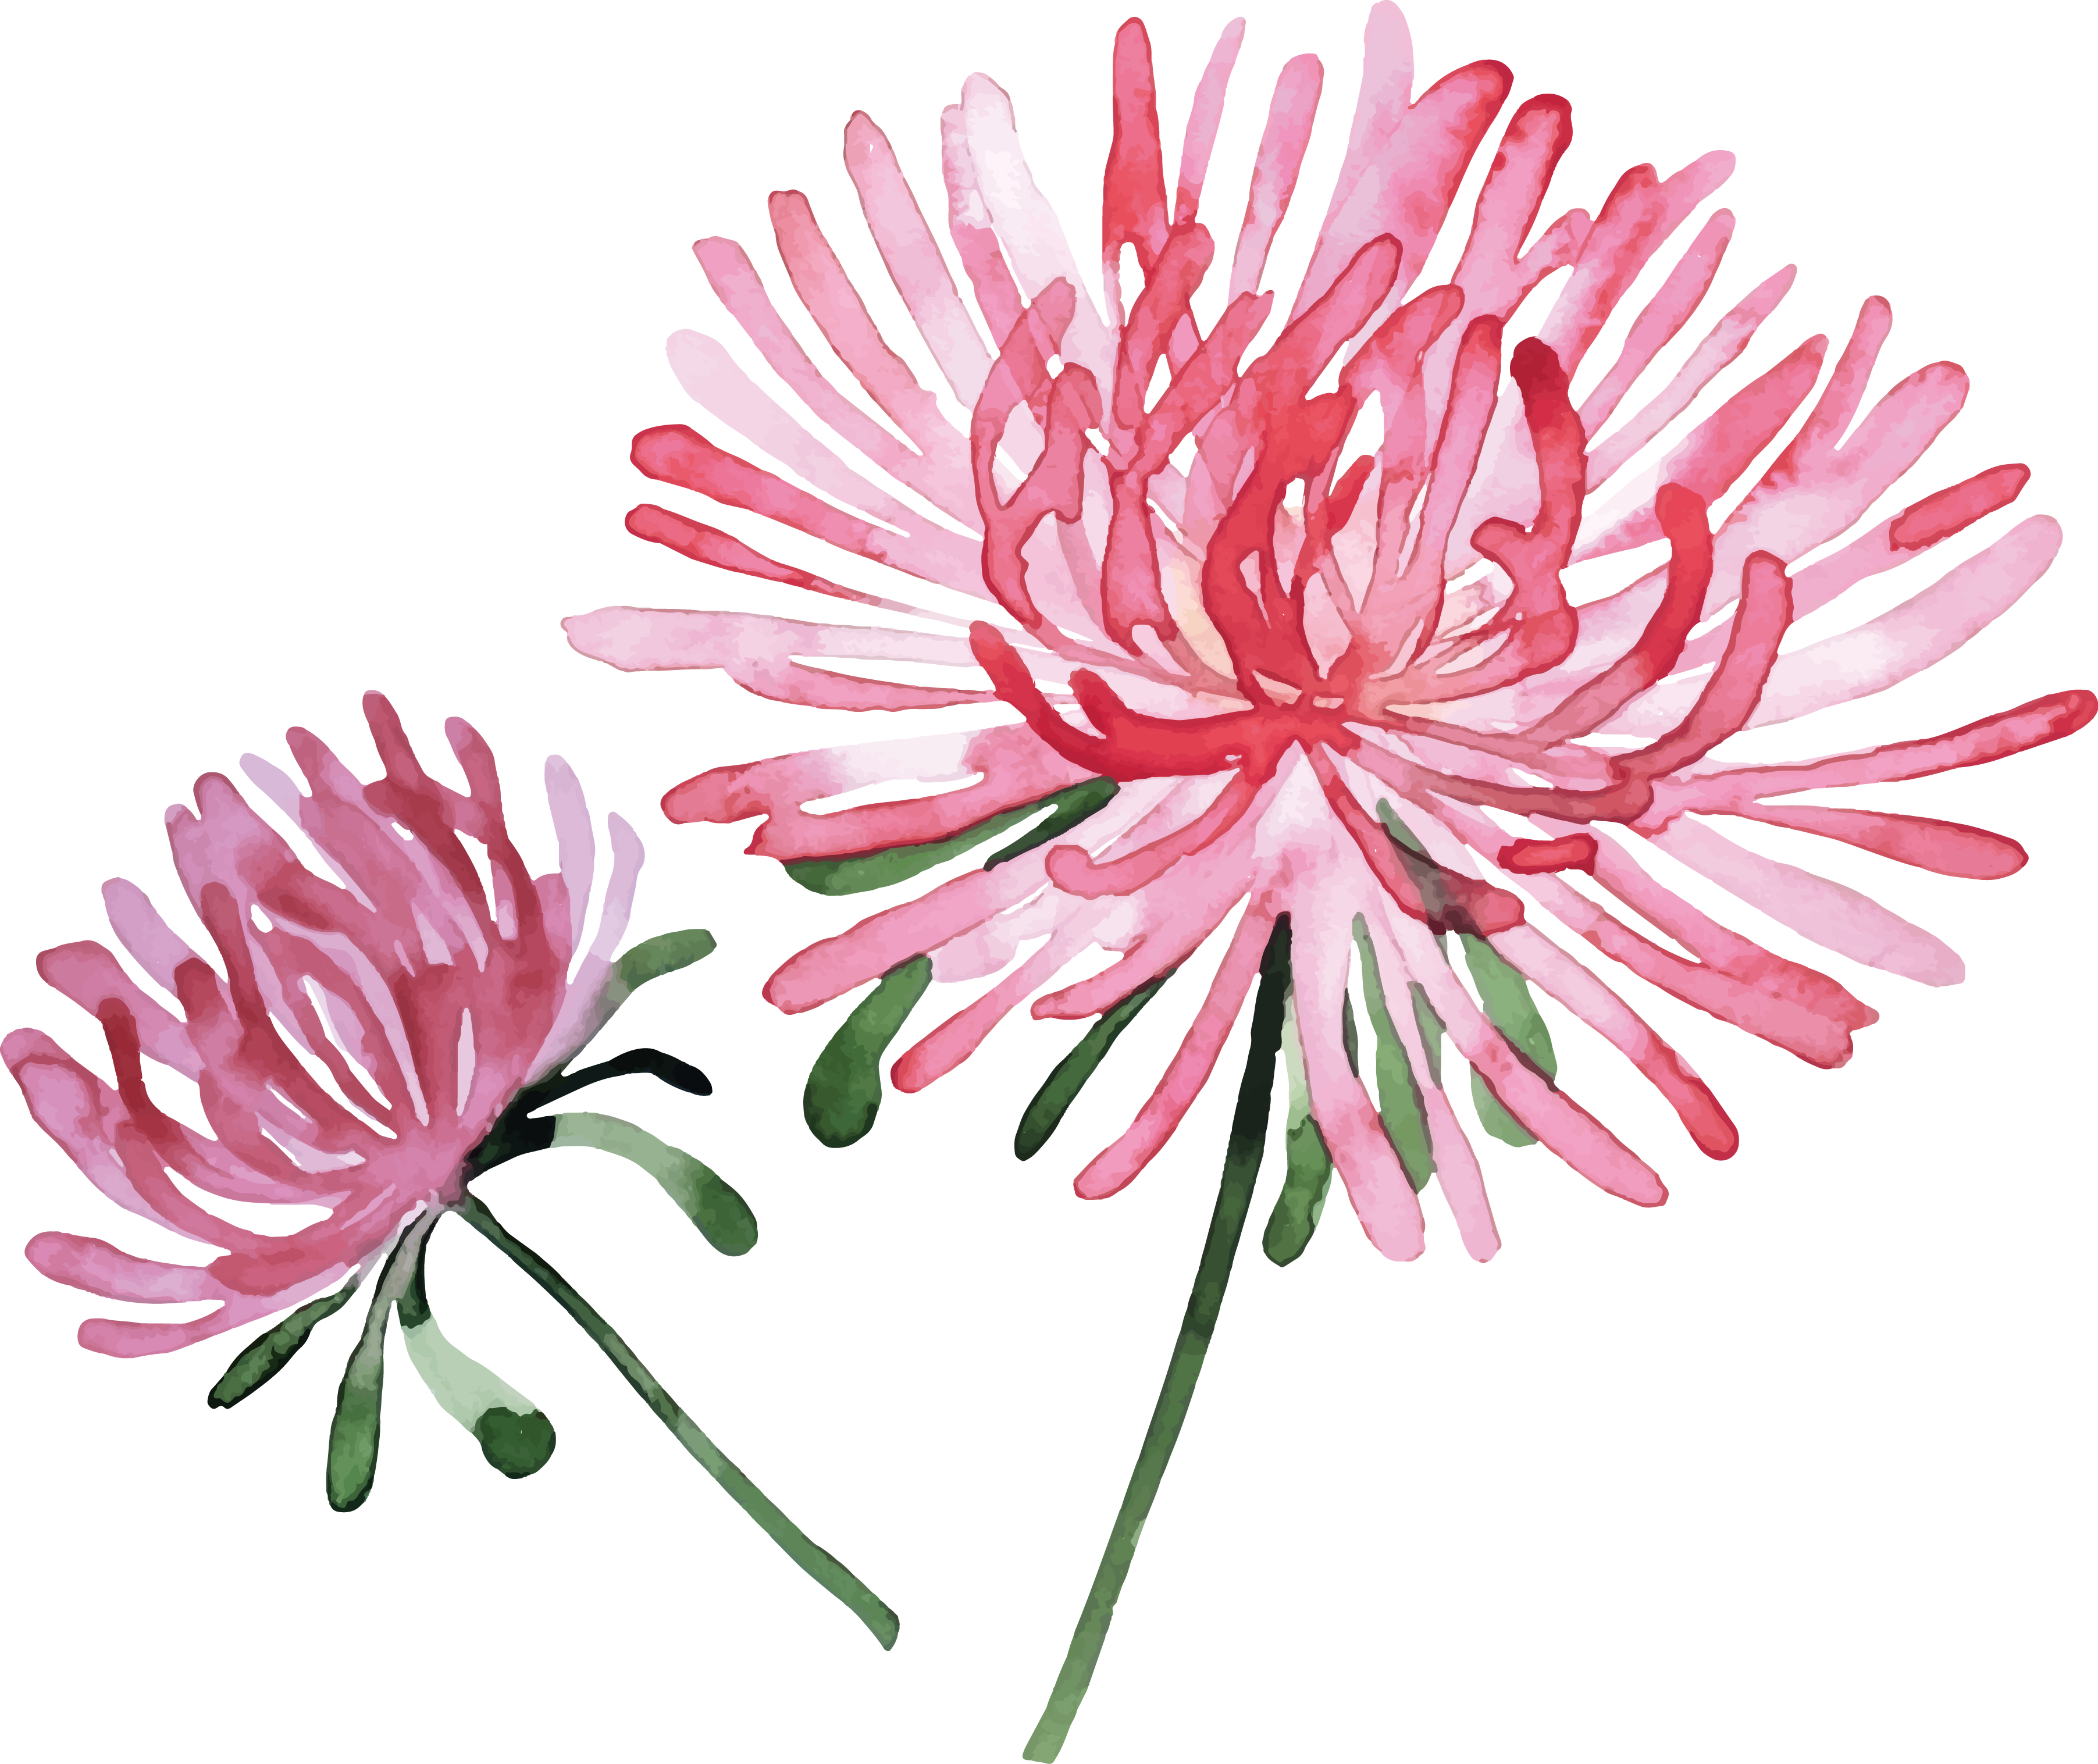 Flower stock png. Watercolor painting photography hand